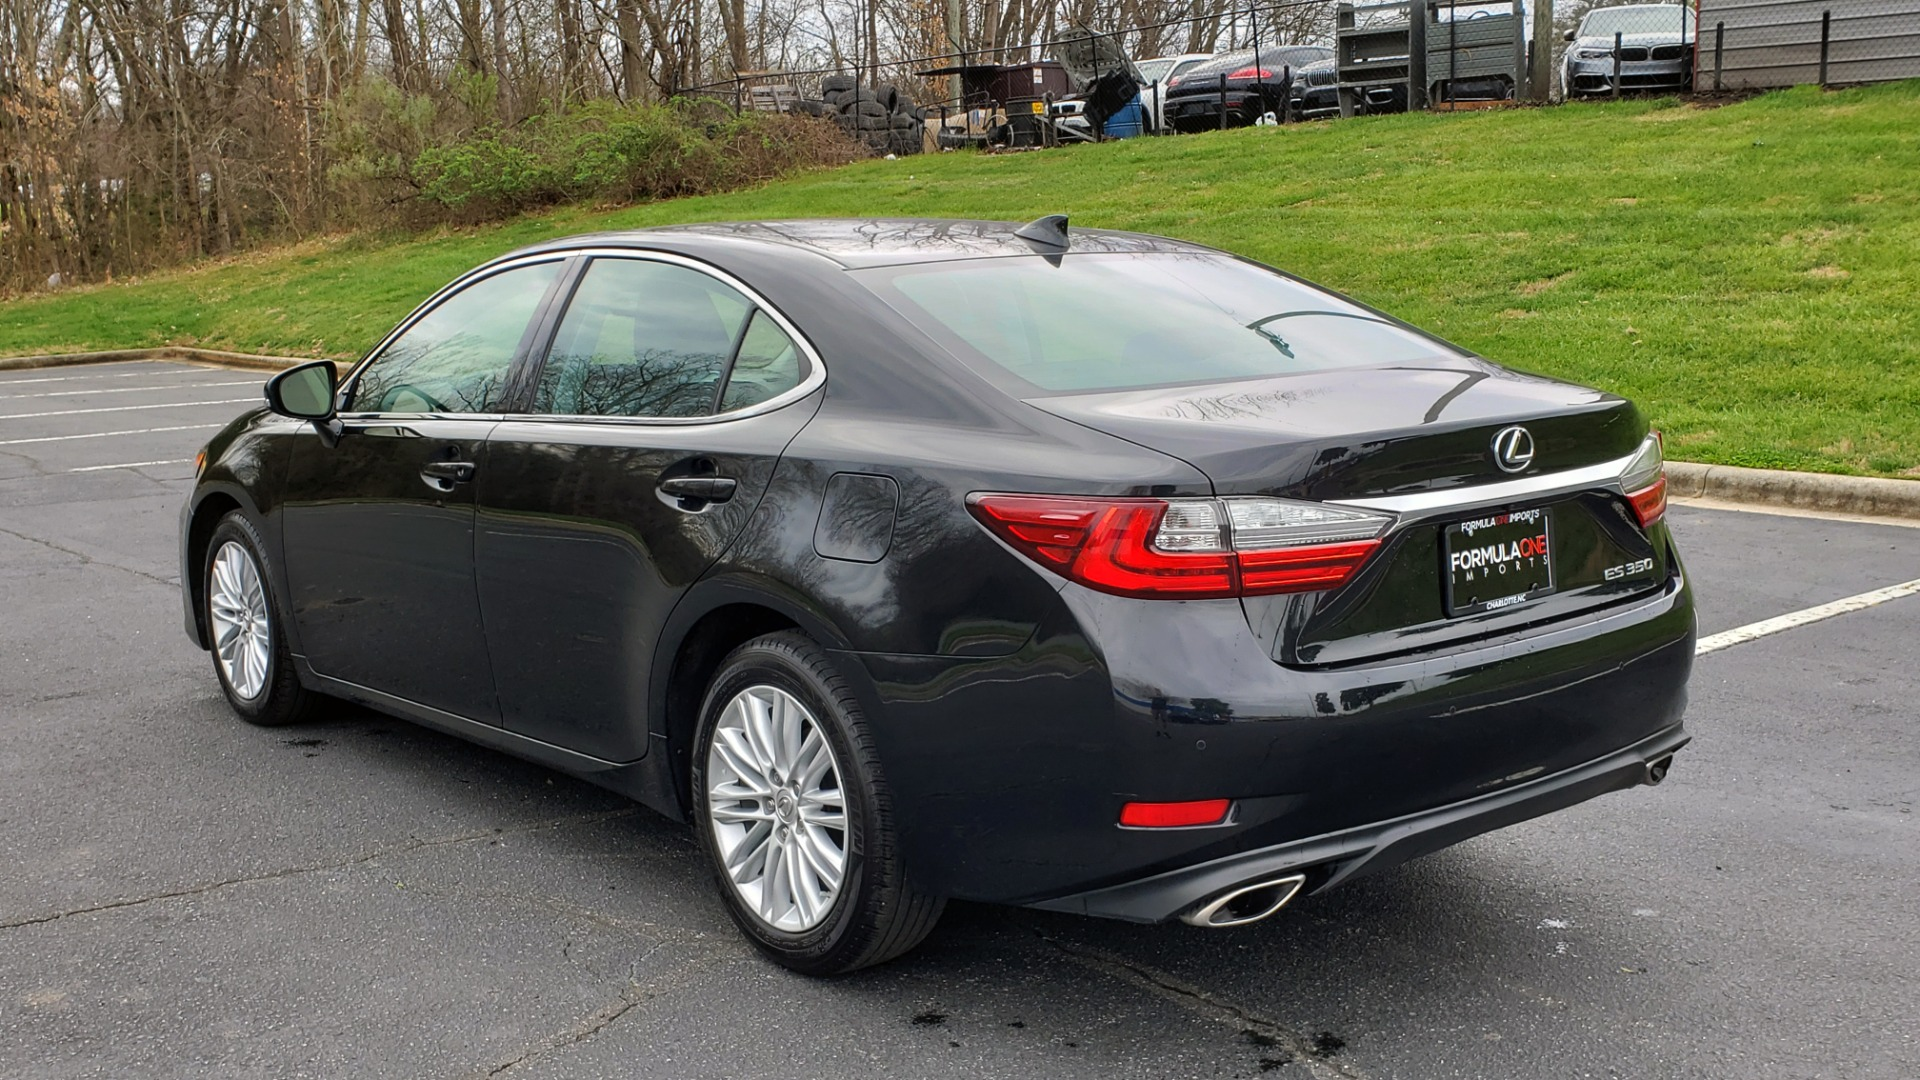 Used 2017 Lexus ES 350 PREMIUM / SUNROOF / PARK ASST / BSM / VENT SEATS / REARVIEW for sale Sold at Formula Imports in Charlotte NC 28227 3